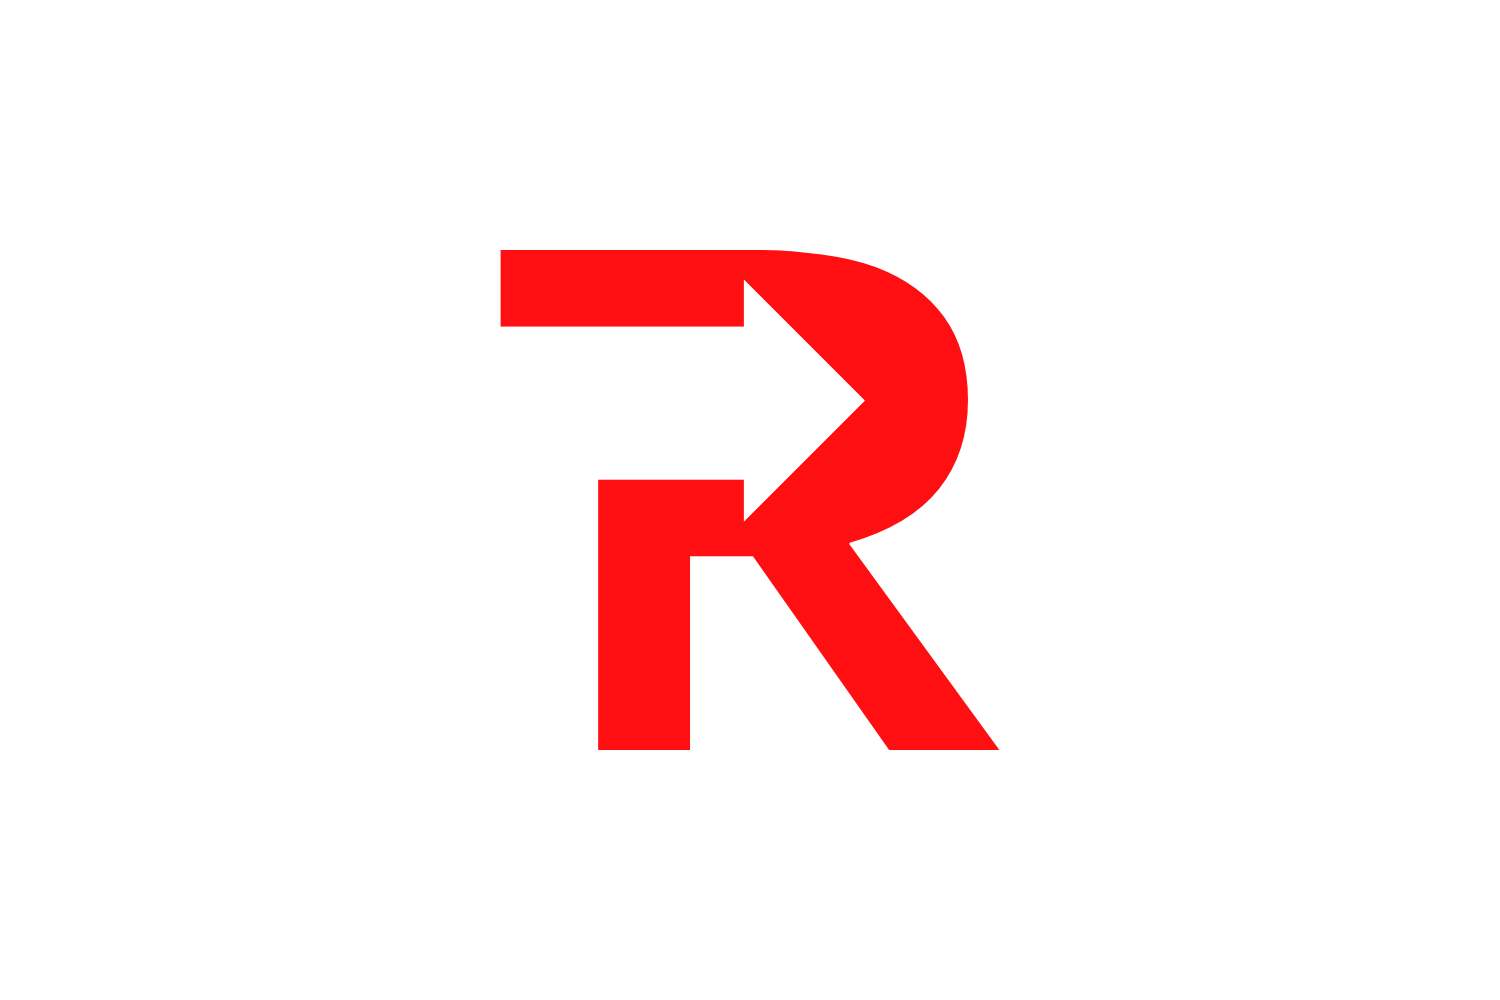 r letter arrow logo example image 1